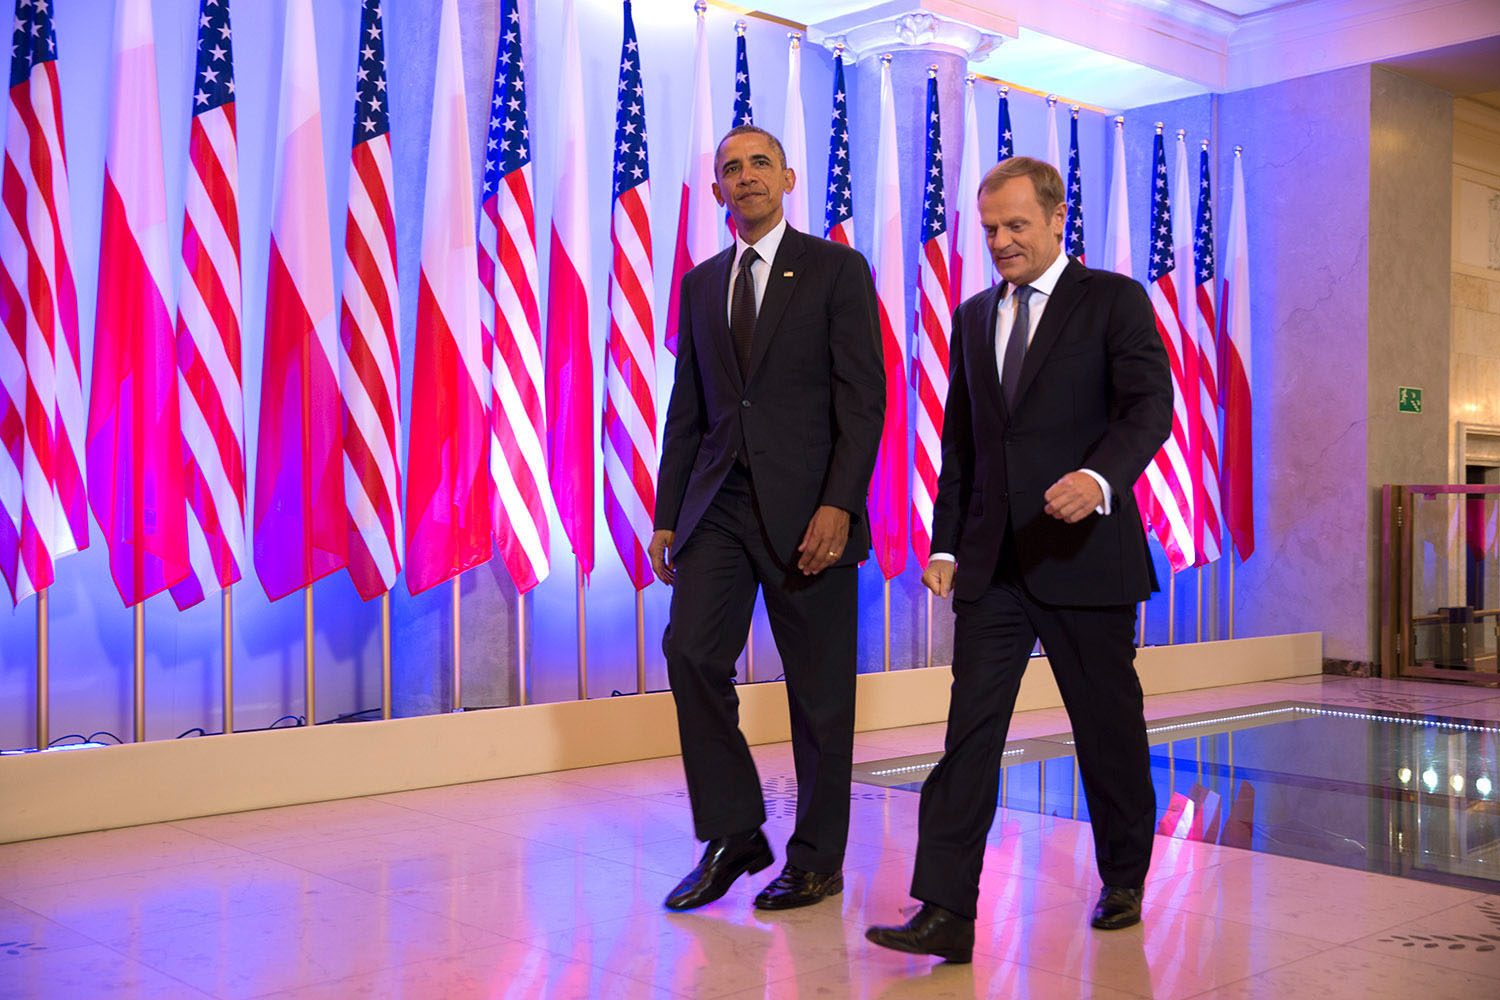 President Barack Obama and Prime Minister Donald Tusk of Poland walk to a bilateral meeting